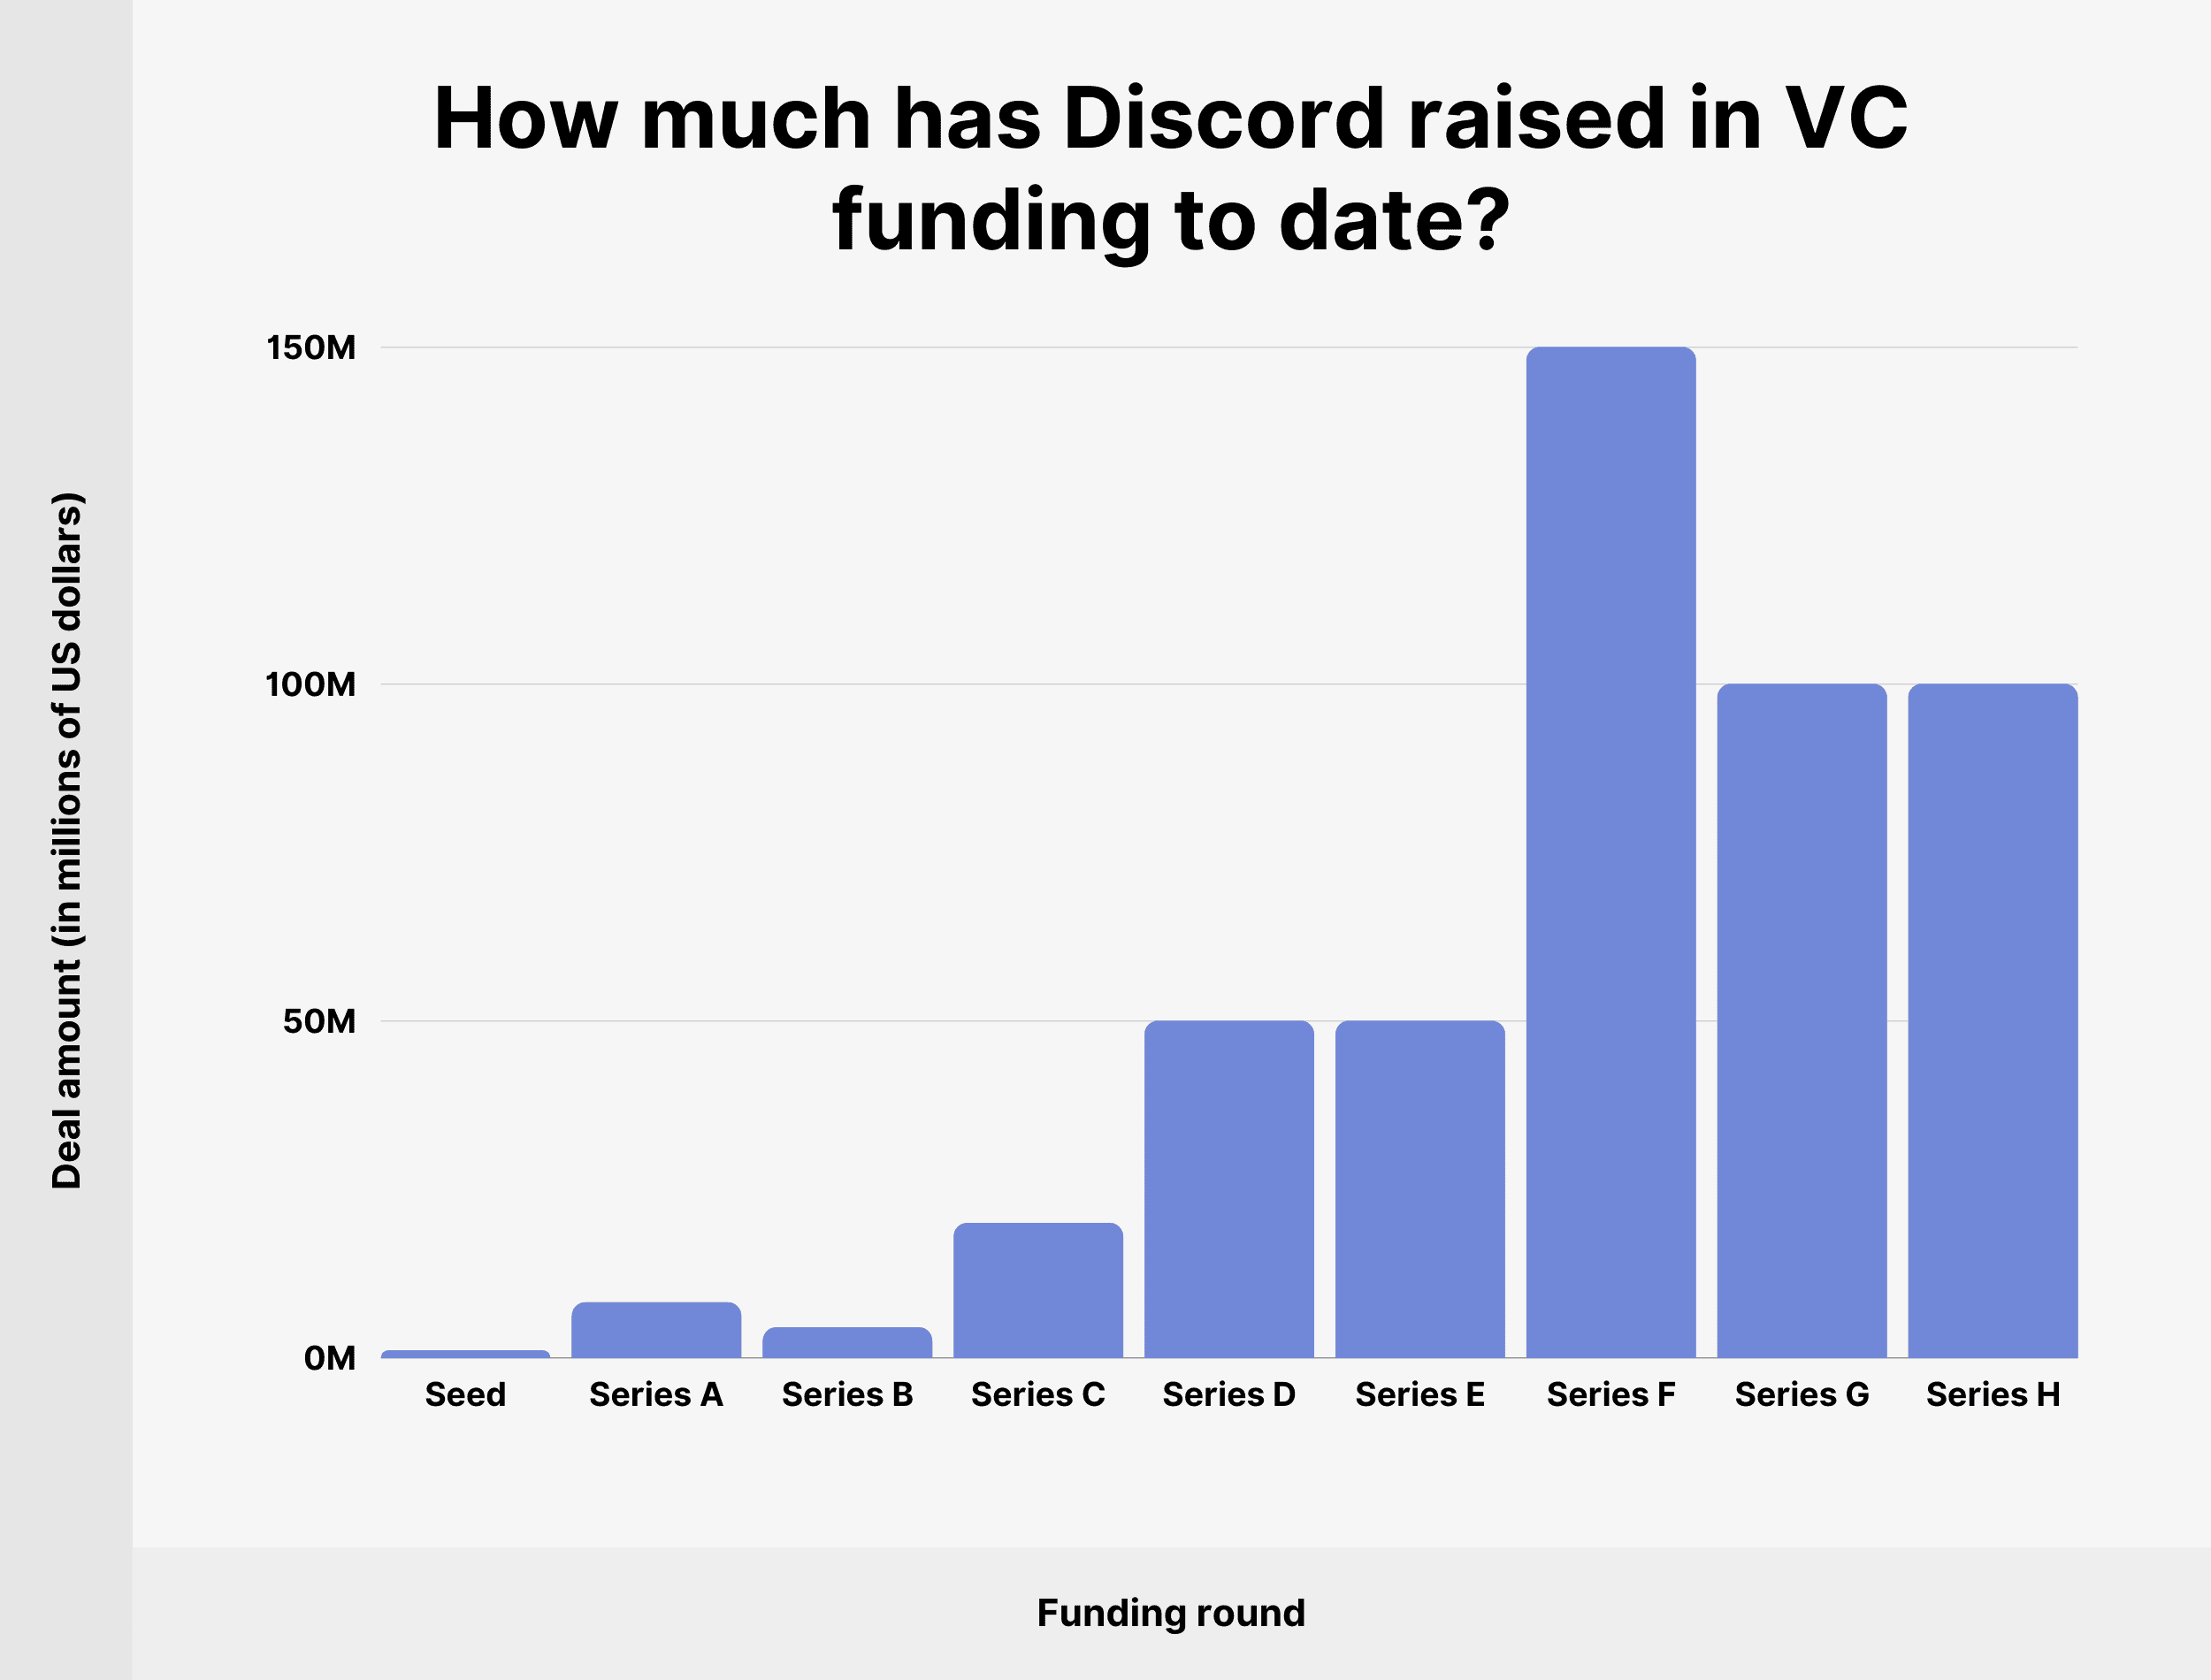 How much has Discord raised in VC funding to date?